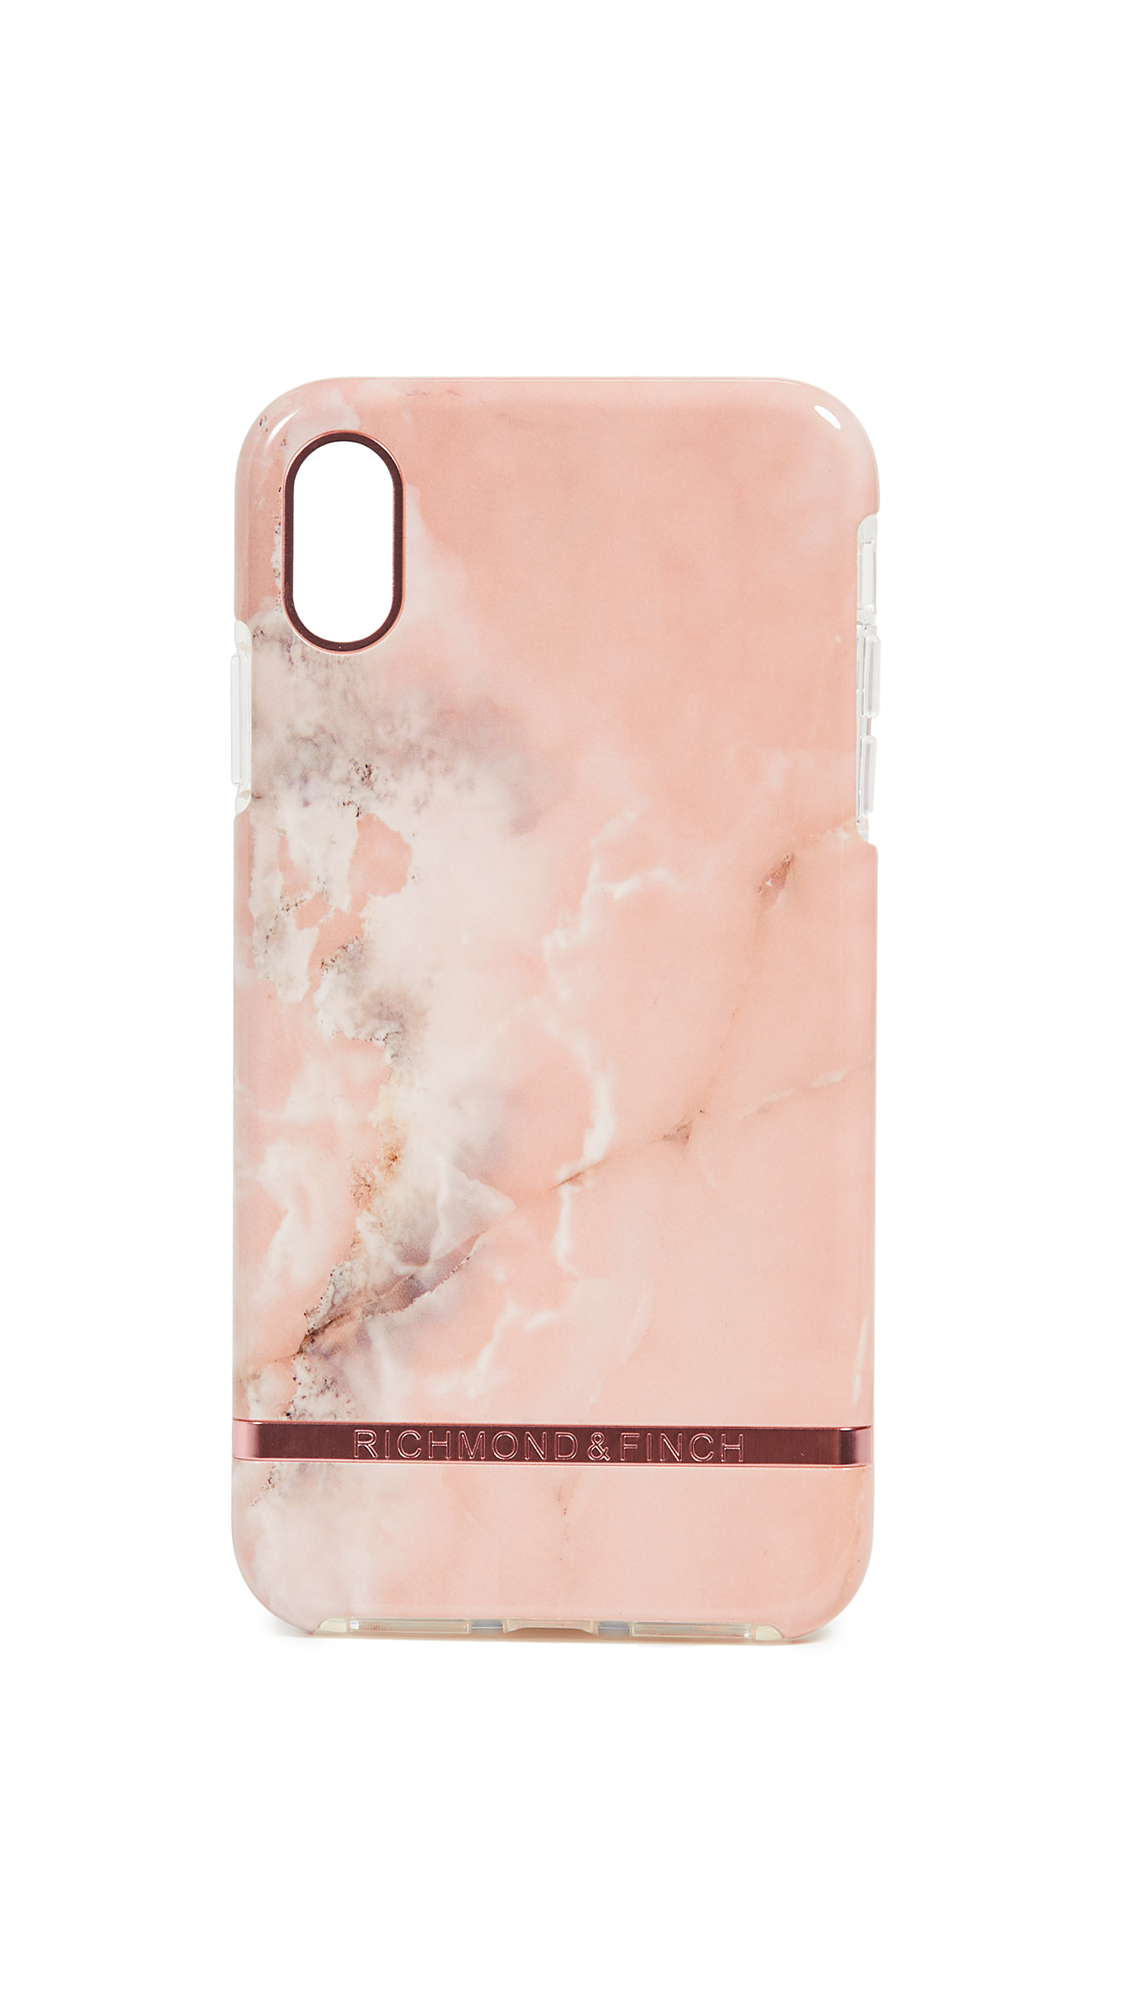 RICHMOND & FINCH Pink Marble Iphone Xs Max Case in Pink/Rose Gold